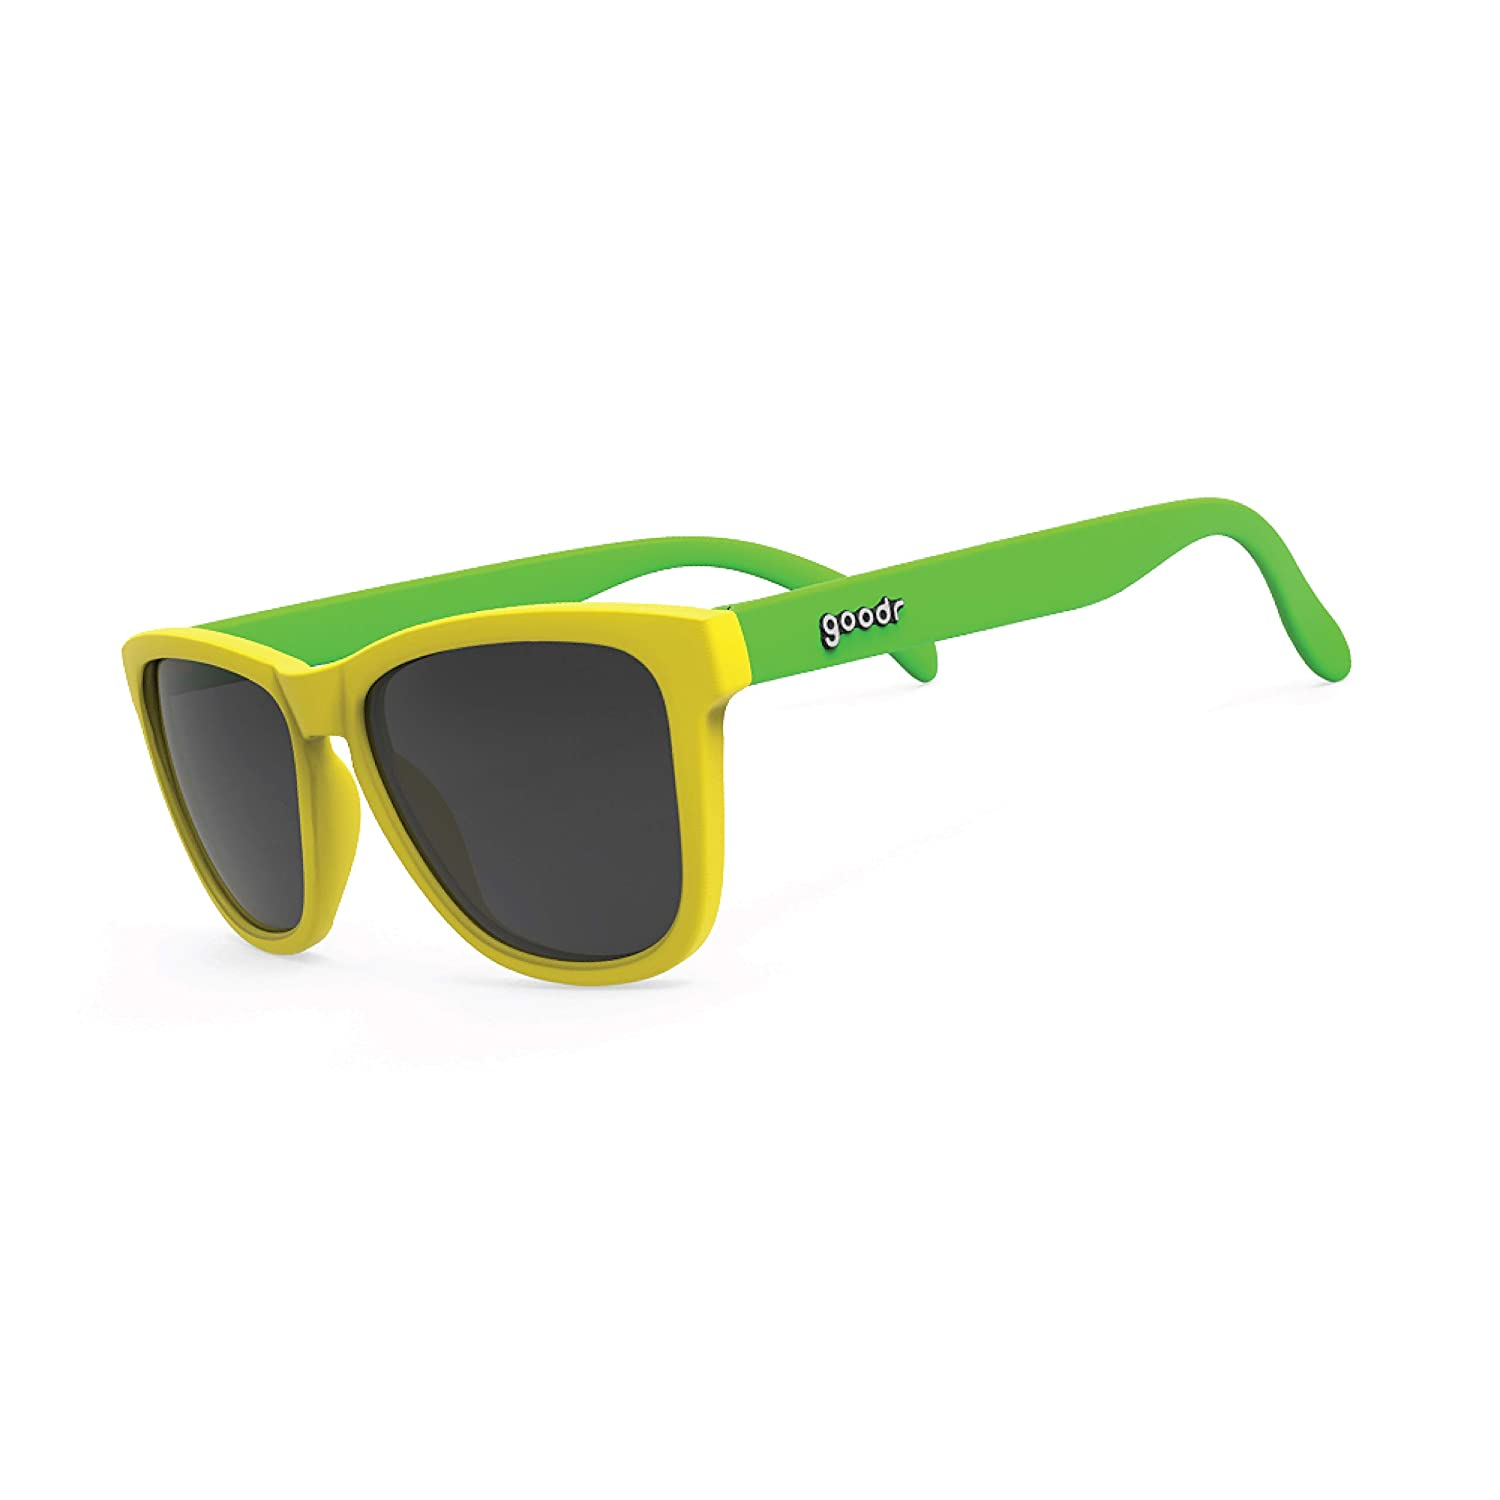 5a7e54b822 goodr OG Sunglasses - (no slip